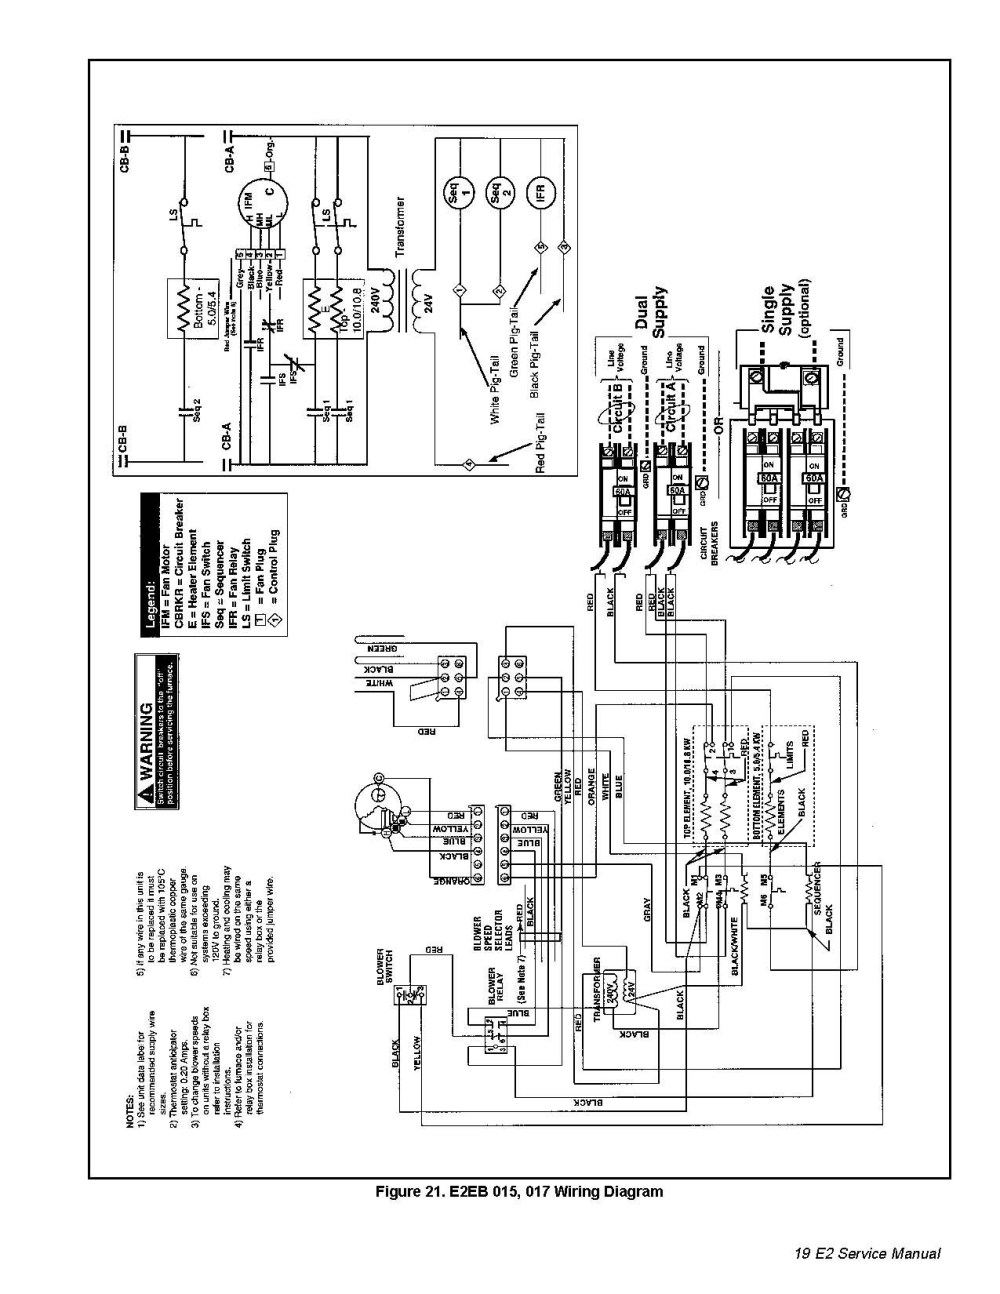 medium resolution of nordyne wiring diagram wiring diagram library nordyne furnace wiring diagram nordyne wiring diagram